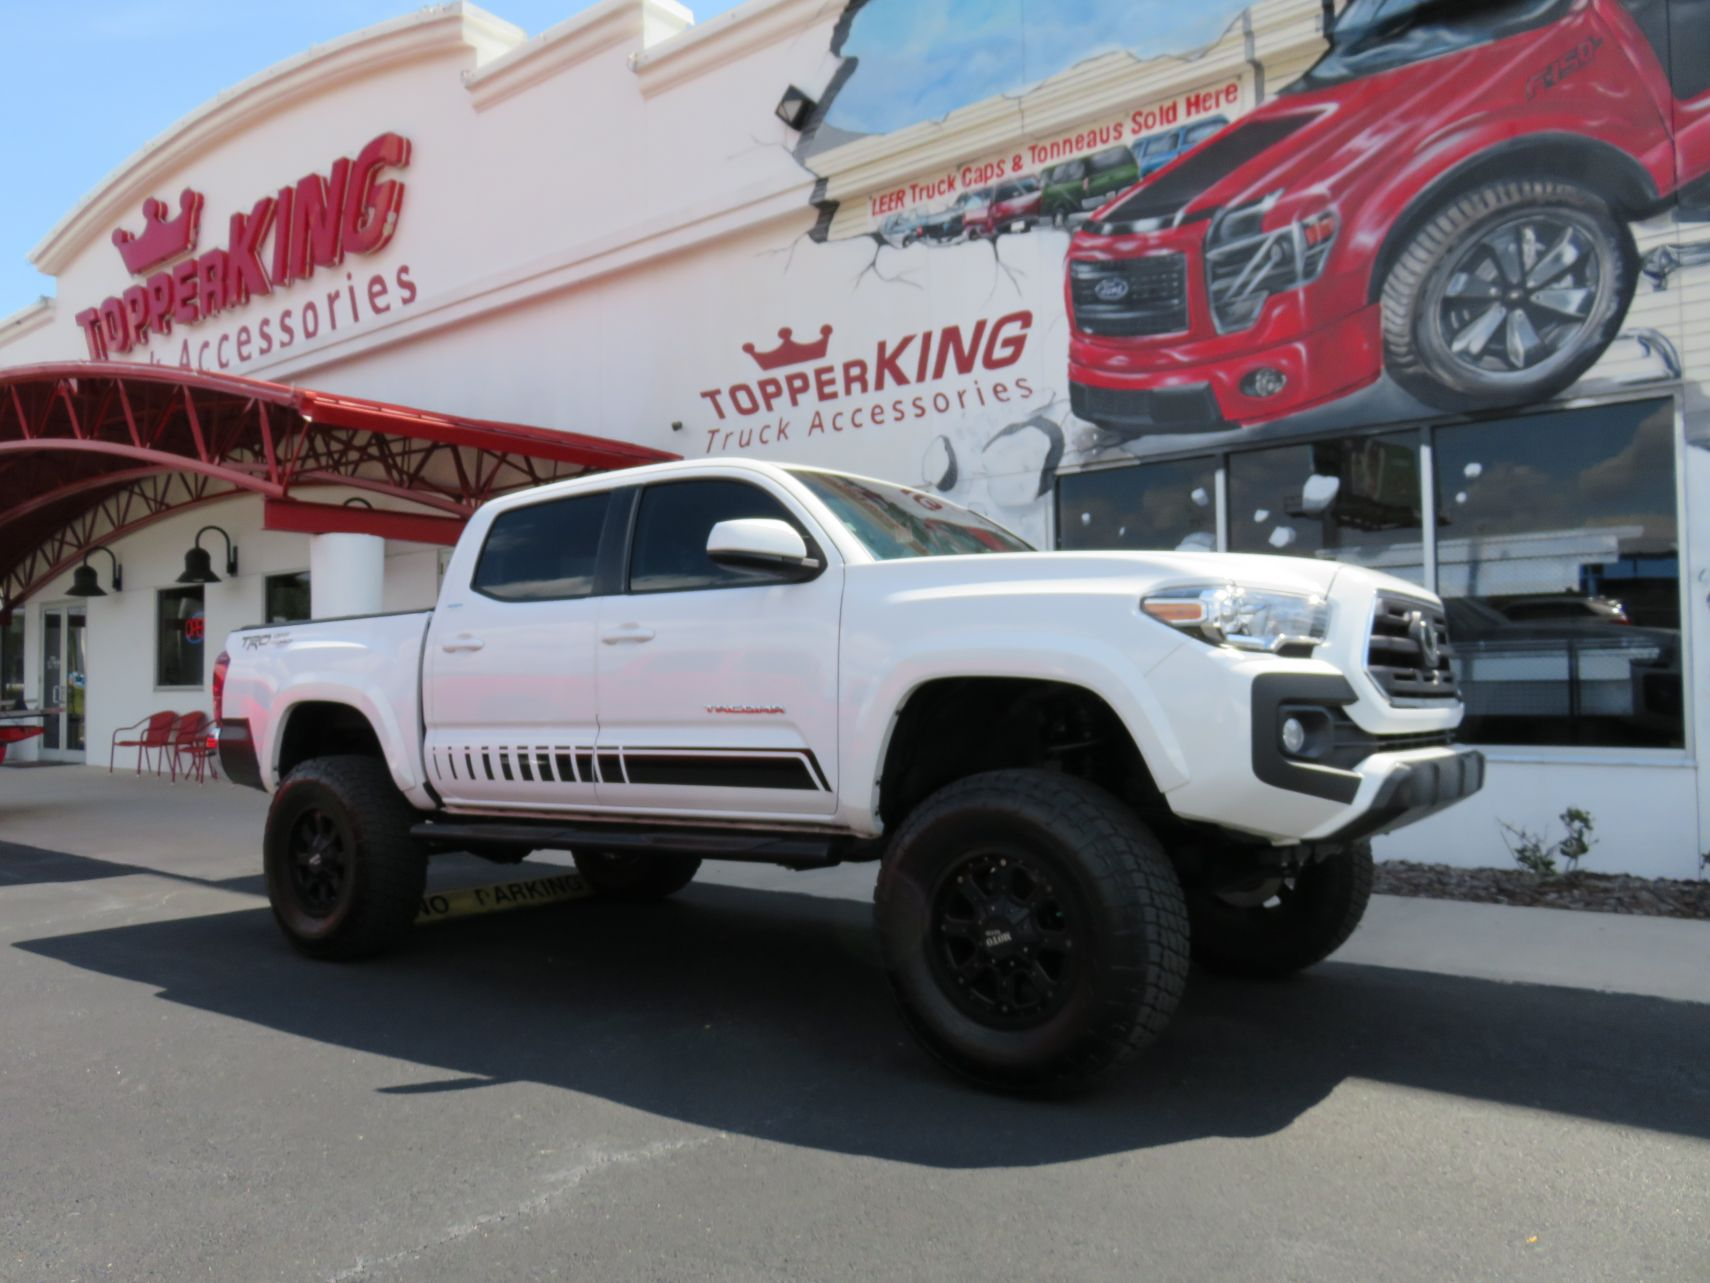 2019 Toyota Tacoma with LEER 350M, Nerf Bars, Hitch, Graphics, Bedliner by TopperKING in Brandon, FL 813-689-2449 or Clearwater FL 727-530-9066. Call today!